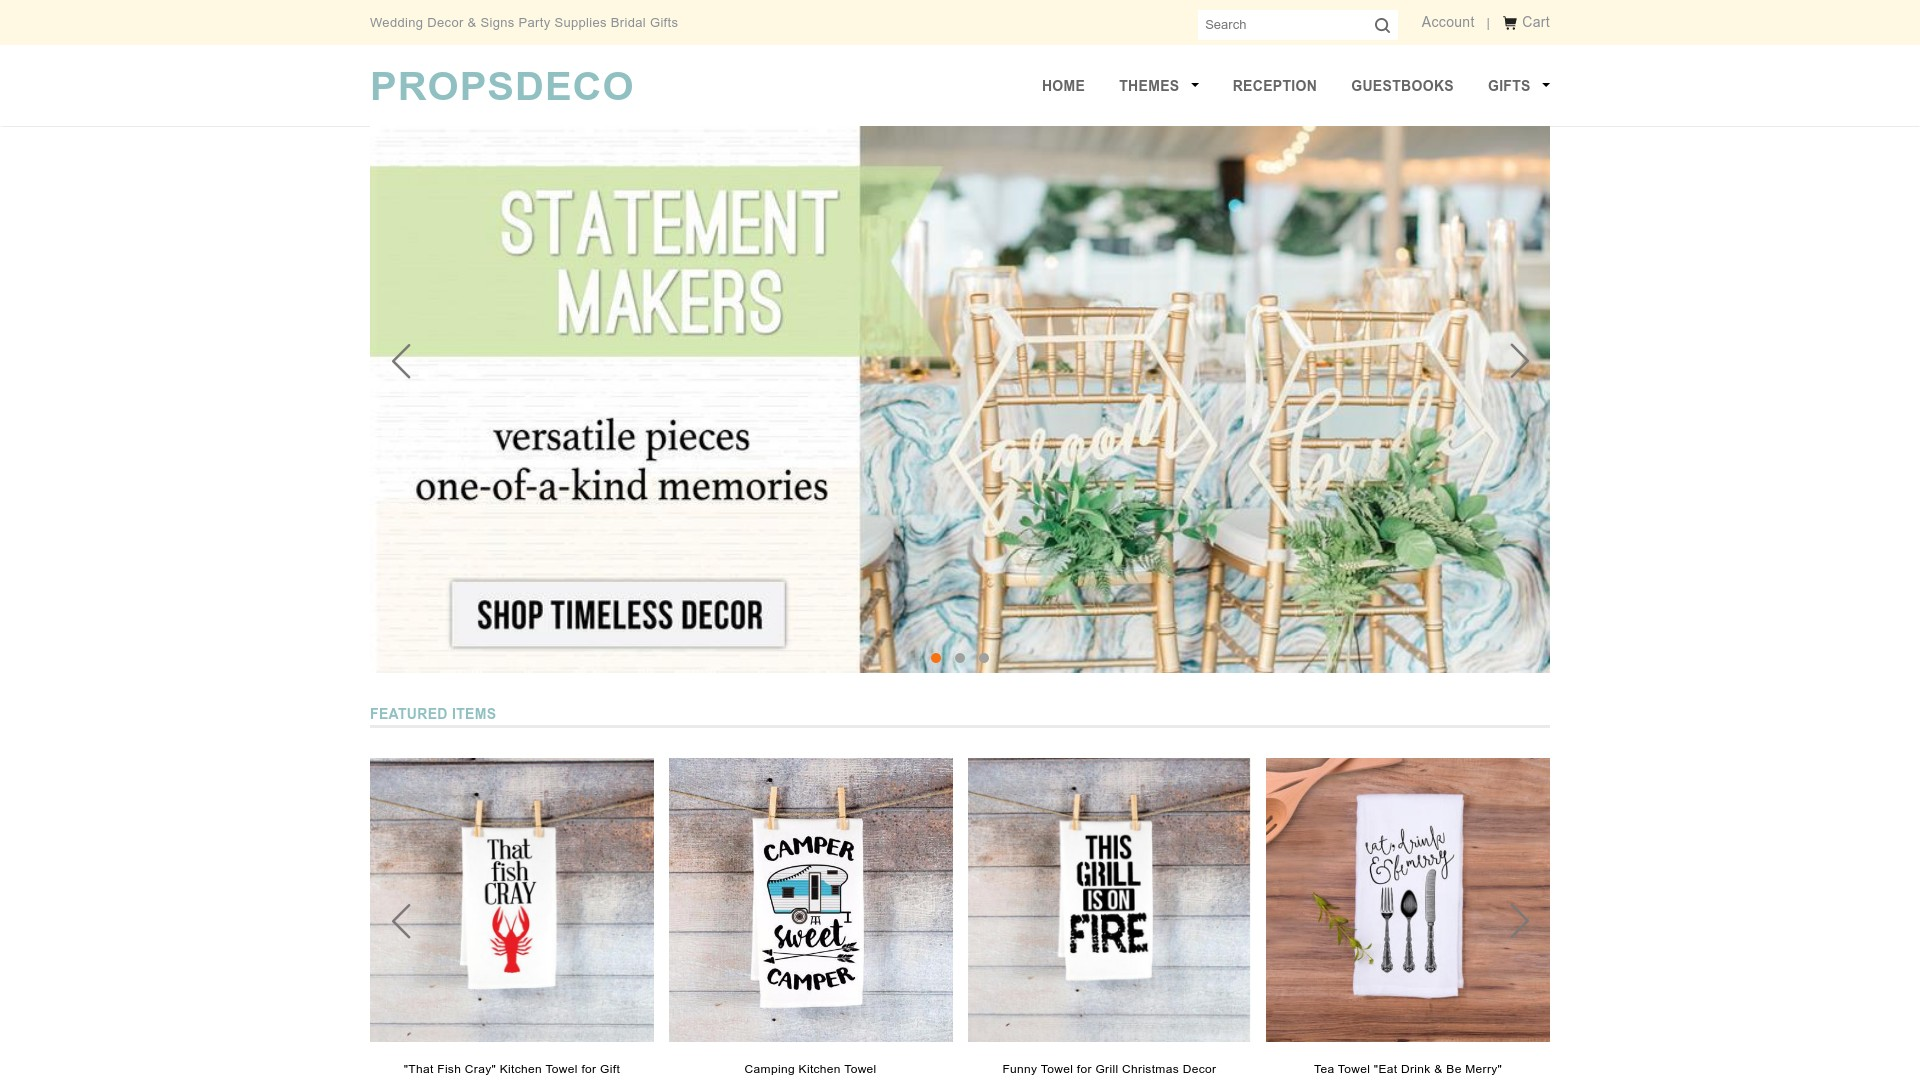 Is Propsdeco a Scam? Review of the Wedding Online Store